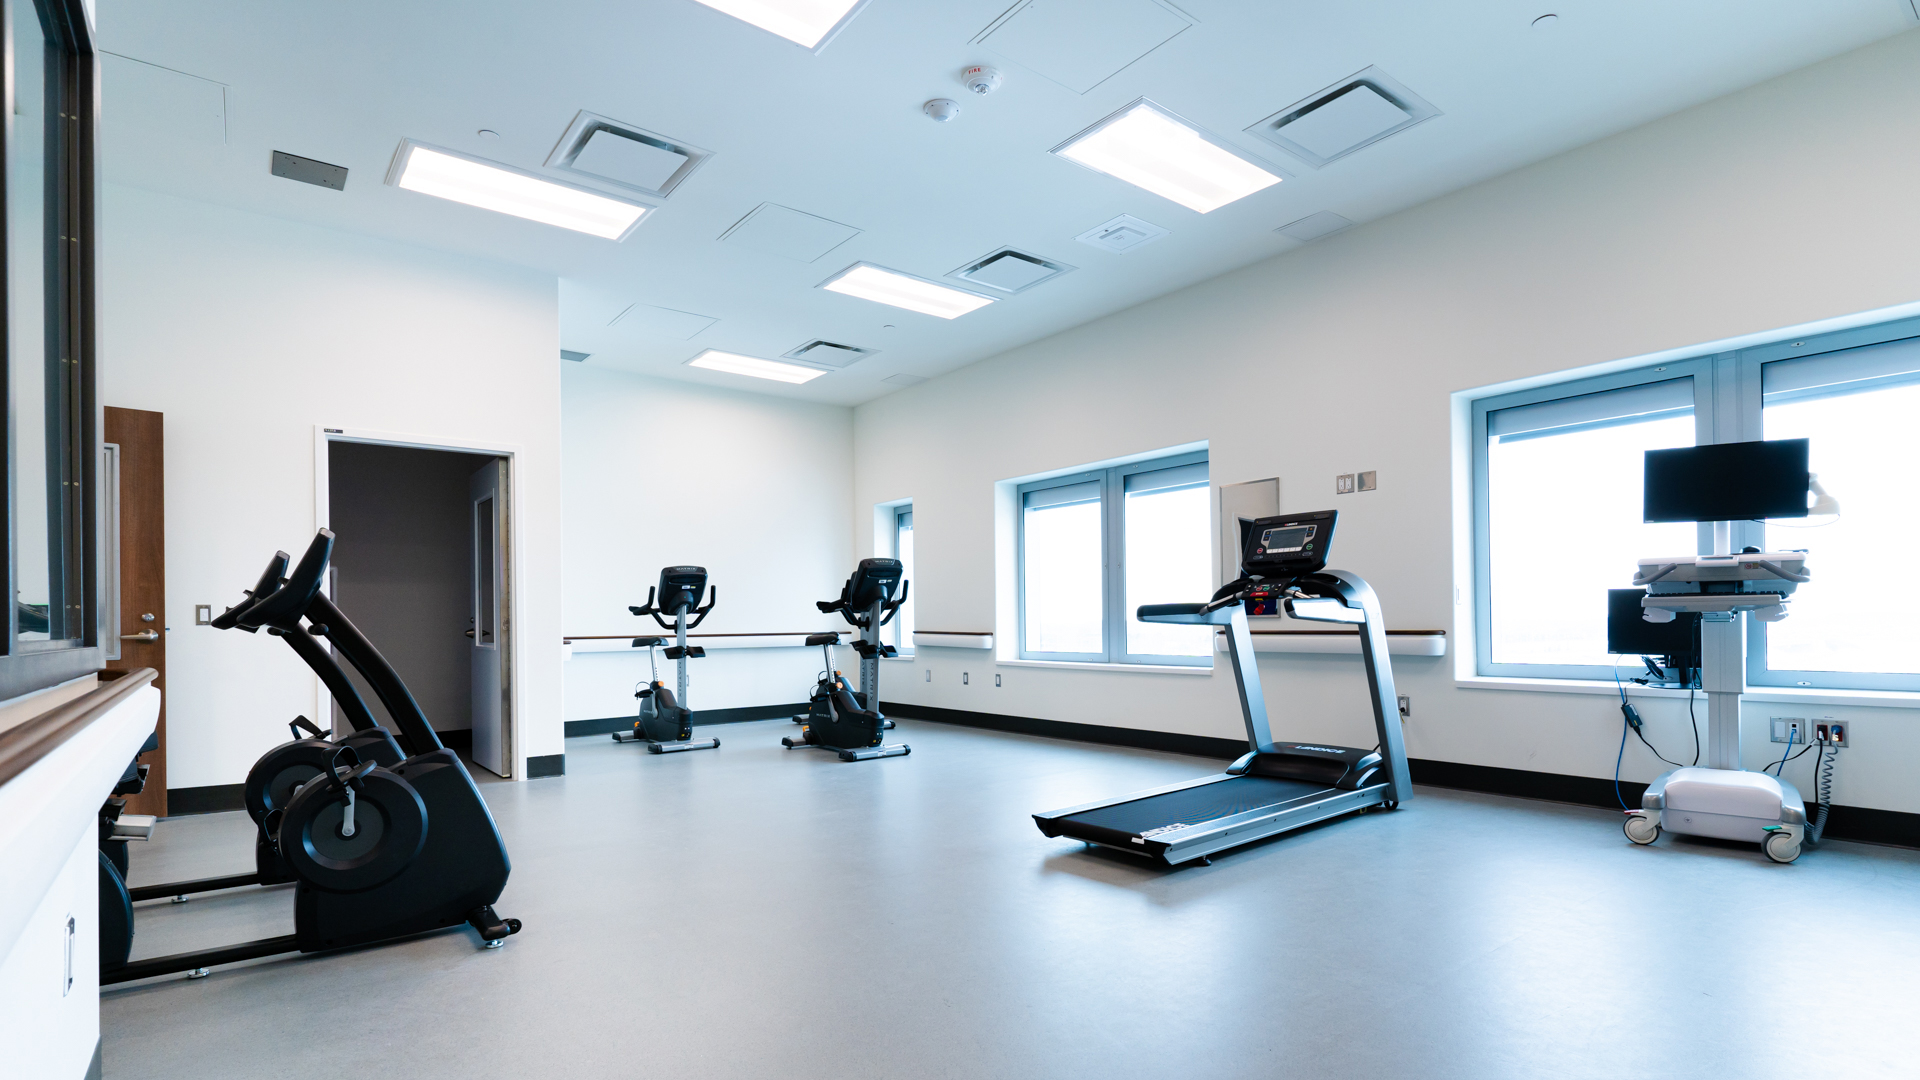 Inpatient Exercise Room